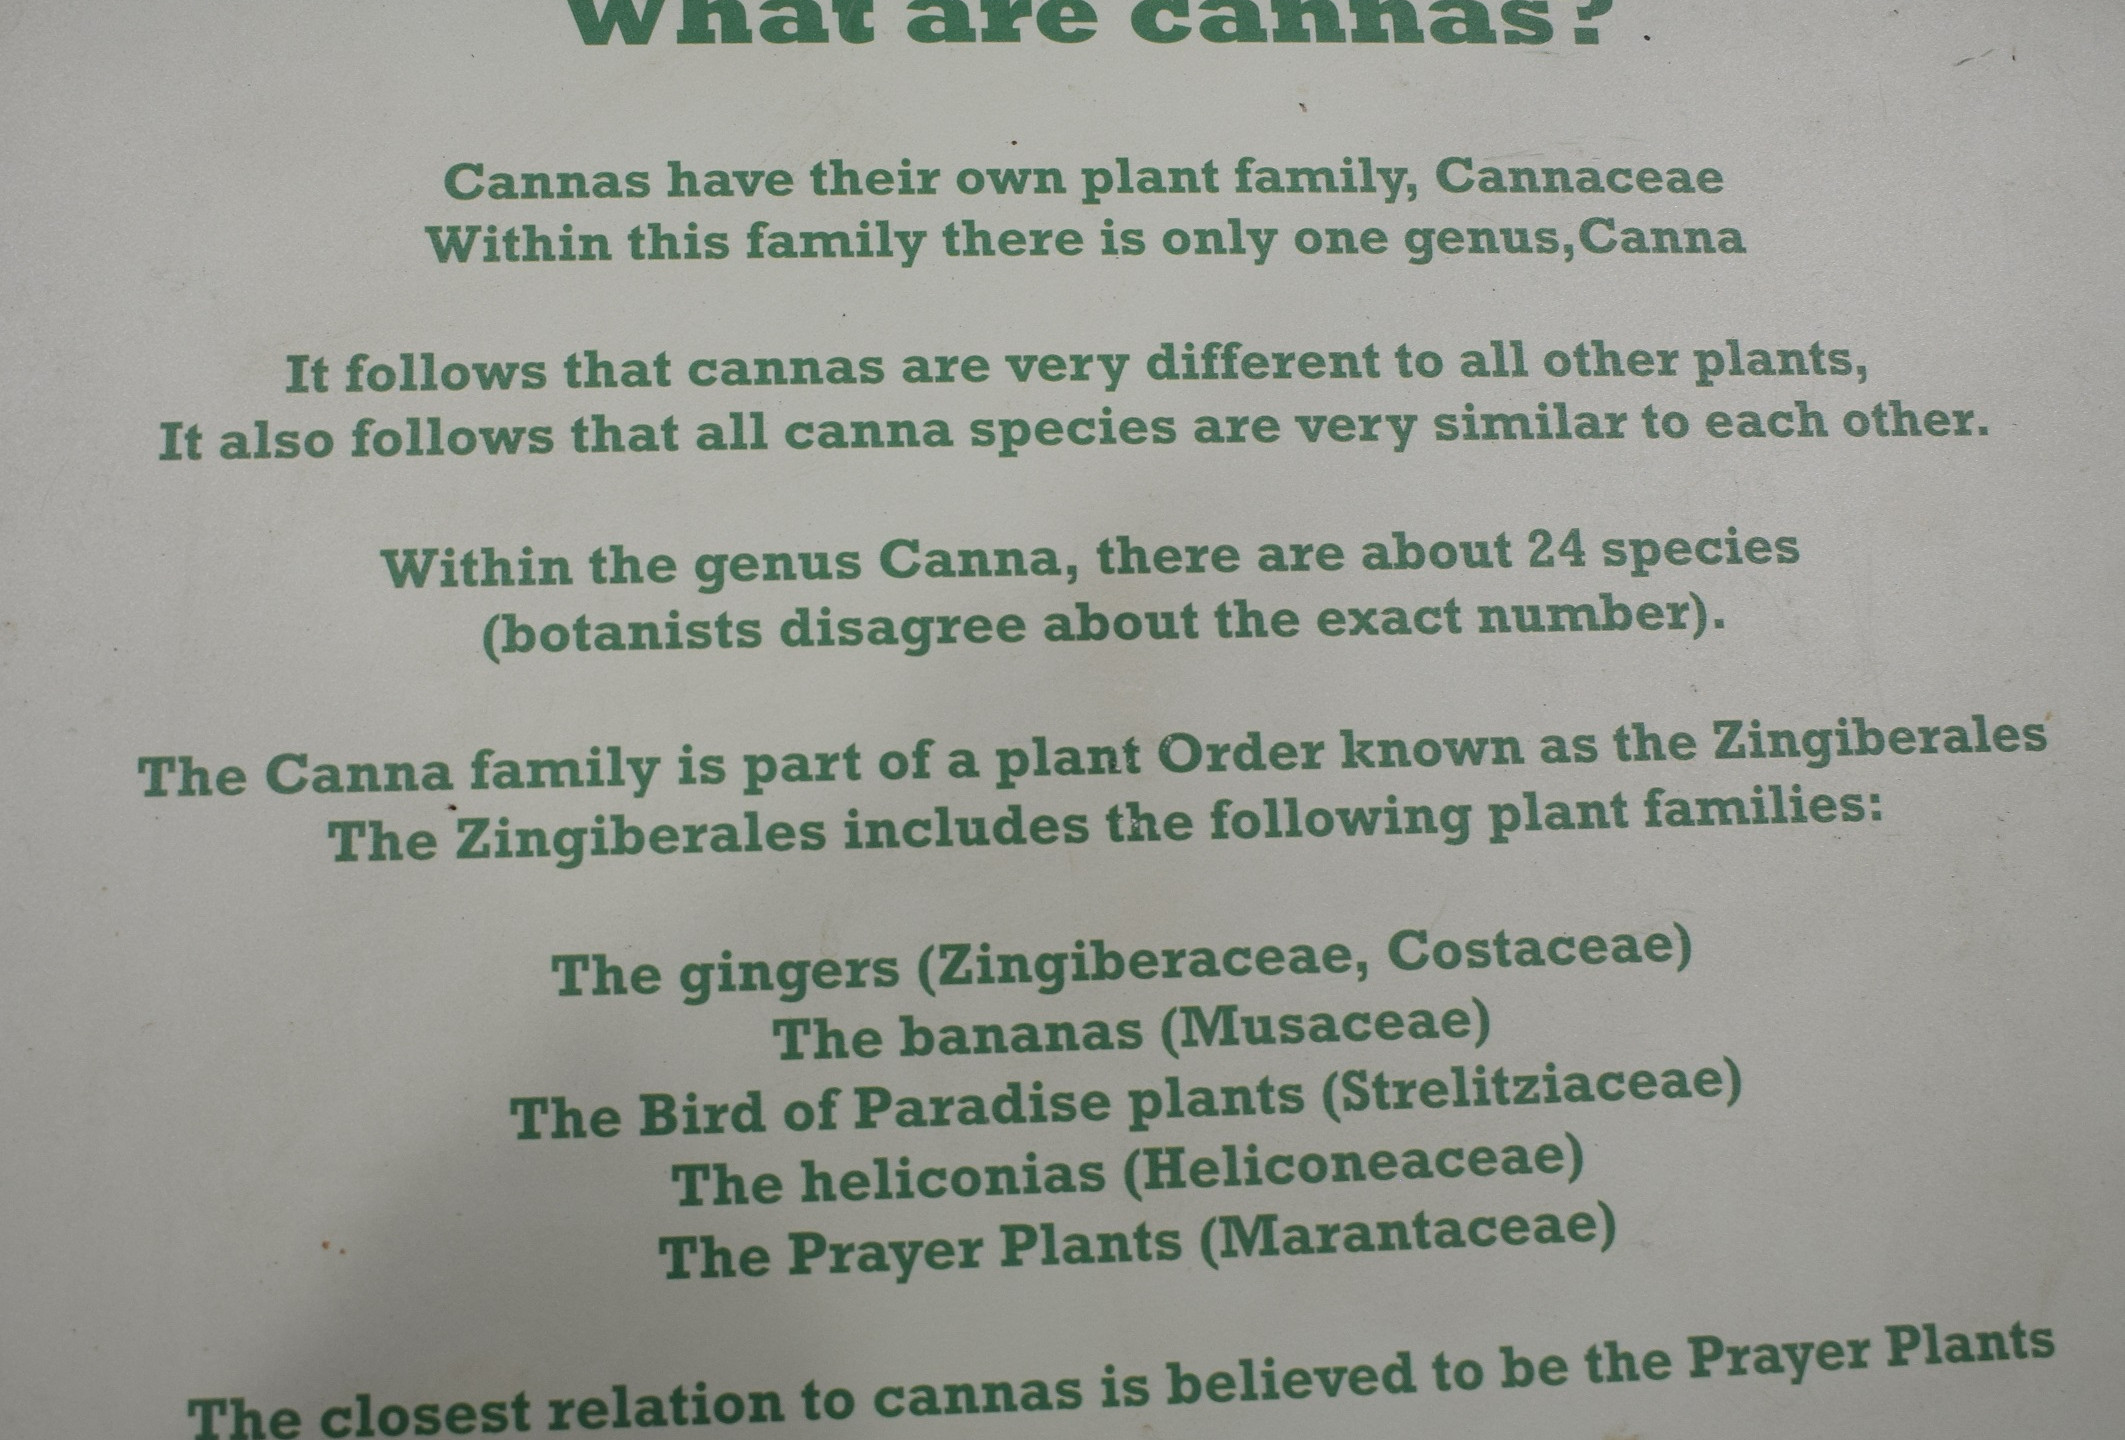 What are Cannas